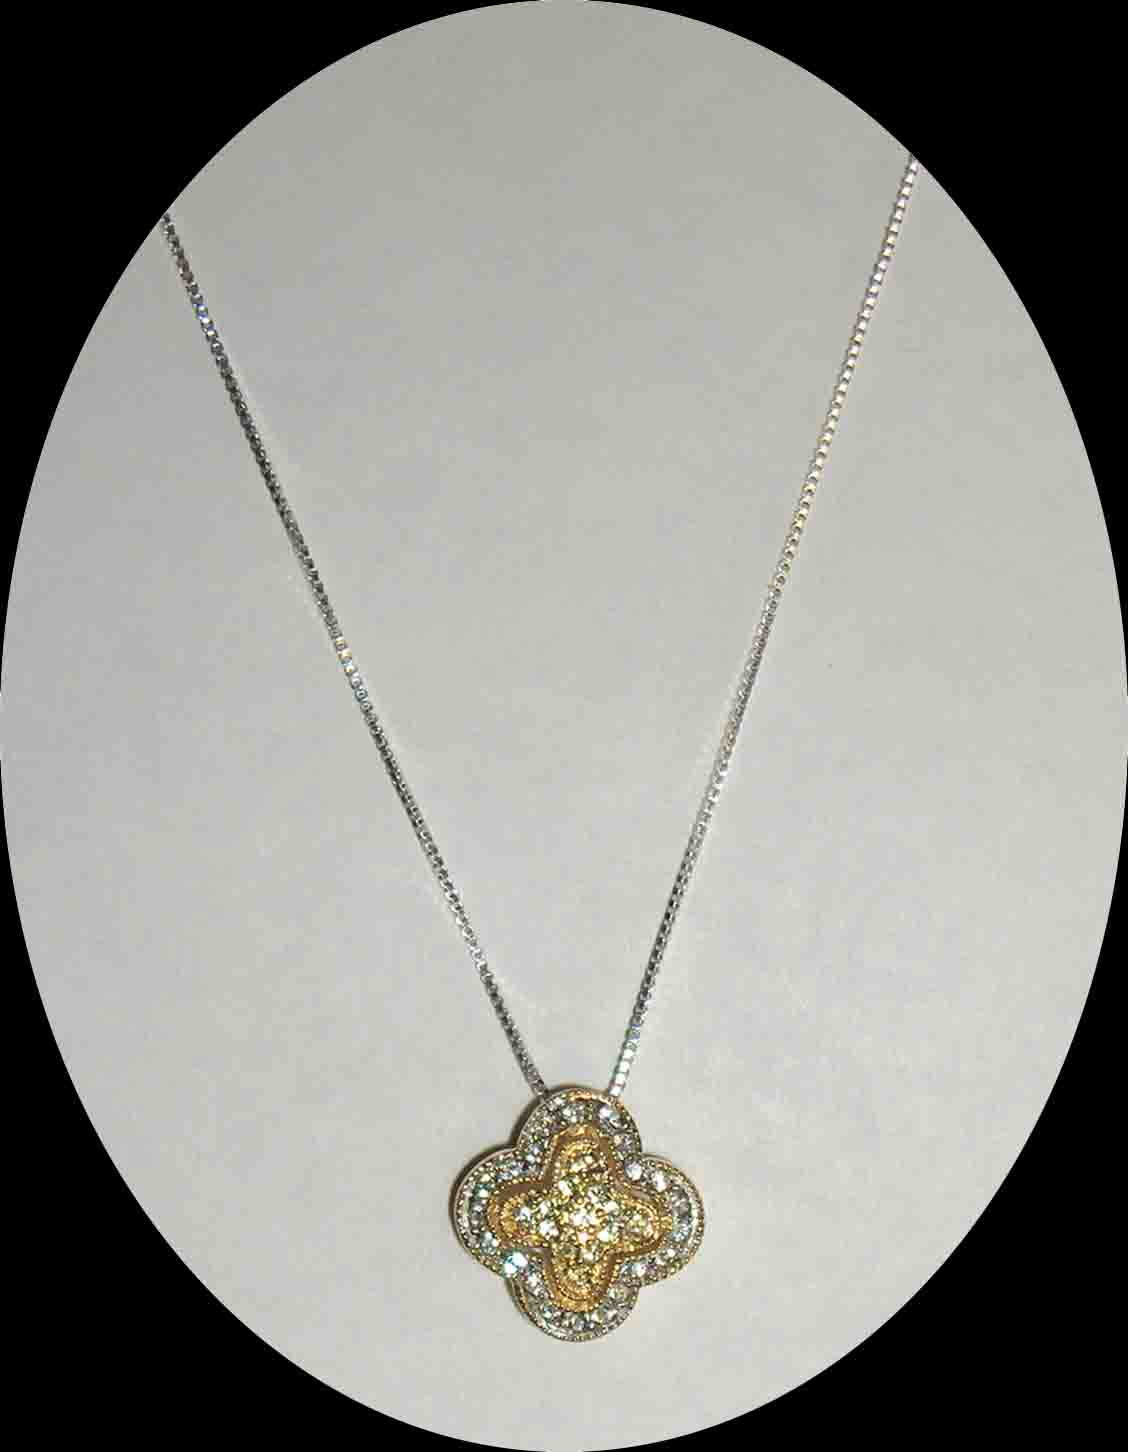 CZ encrusted yellow gold & silver pendant necklace